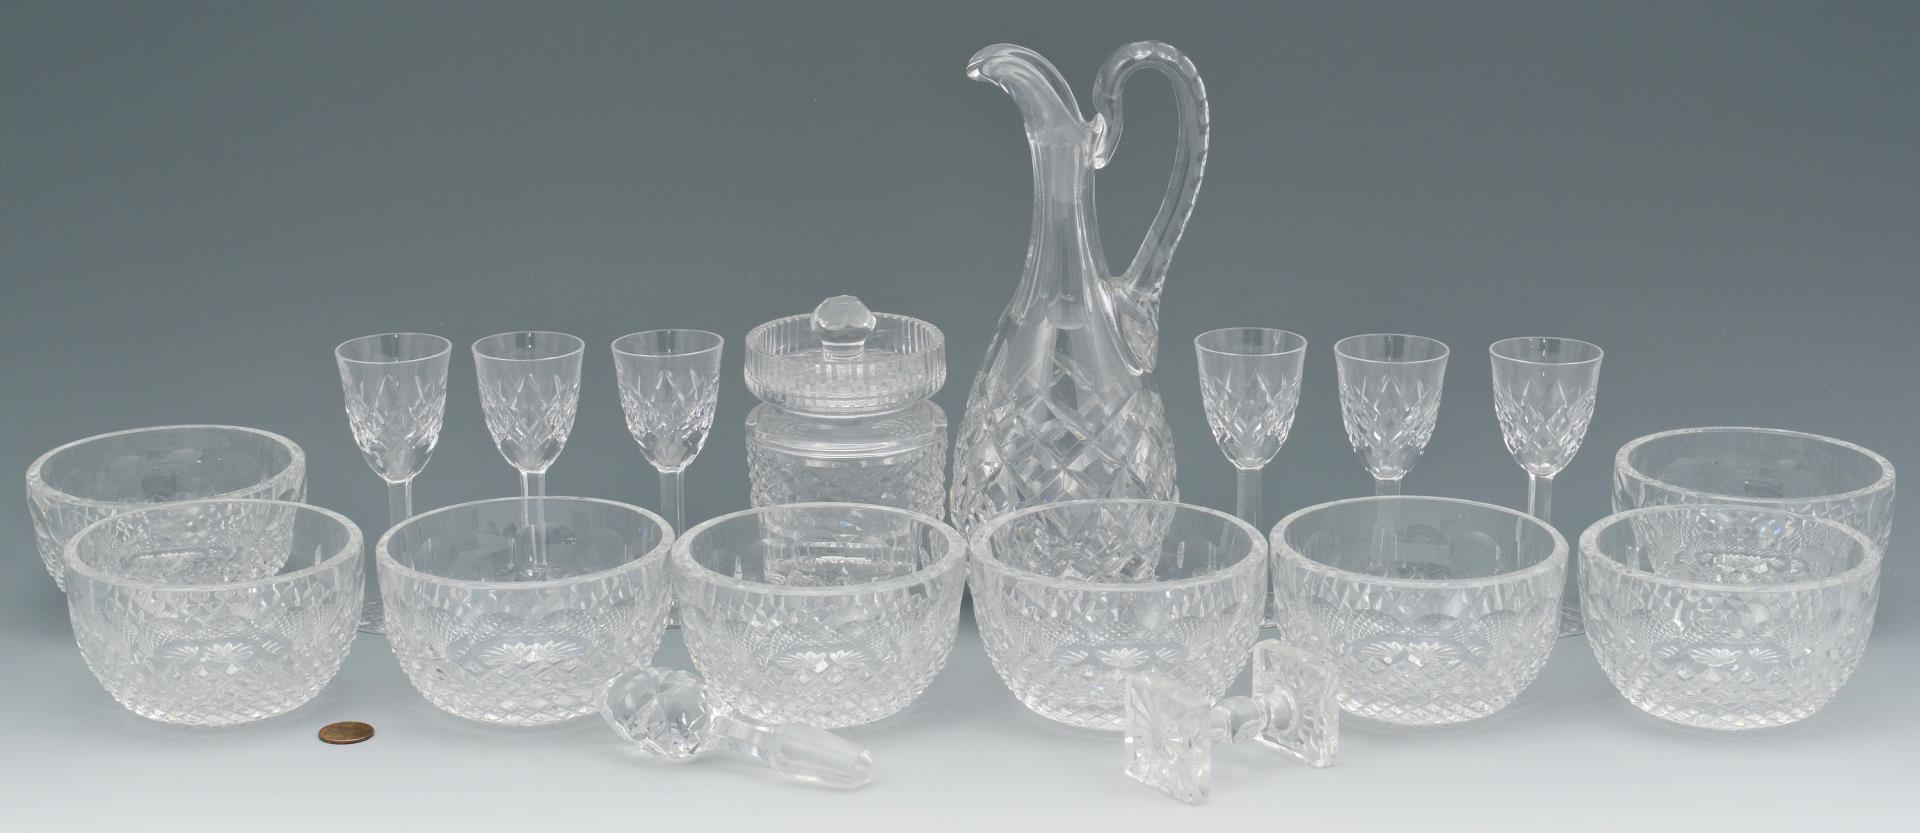 Lot 836: Cut Crystal Items, 18 total